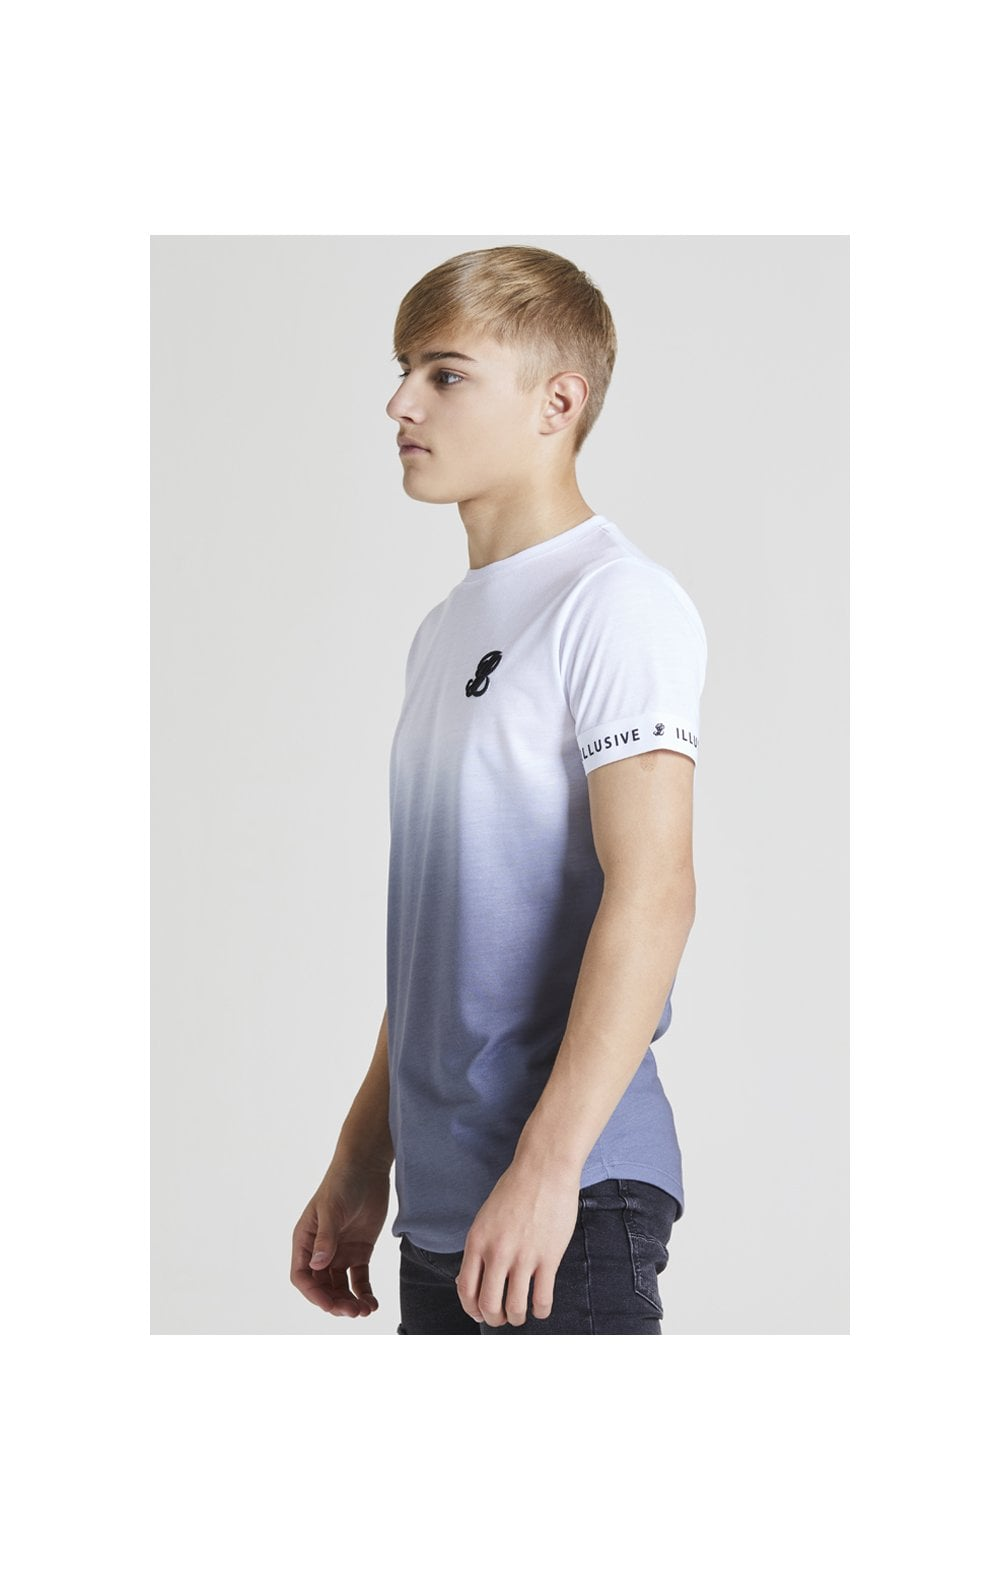 Load image into Gallery viewer, Illusive London Fade Tech Tee – White & Grey (1)